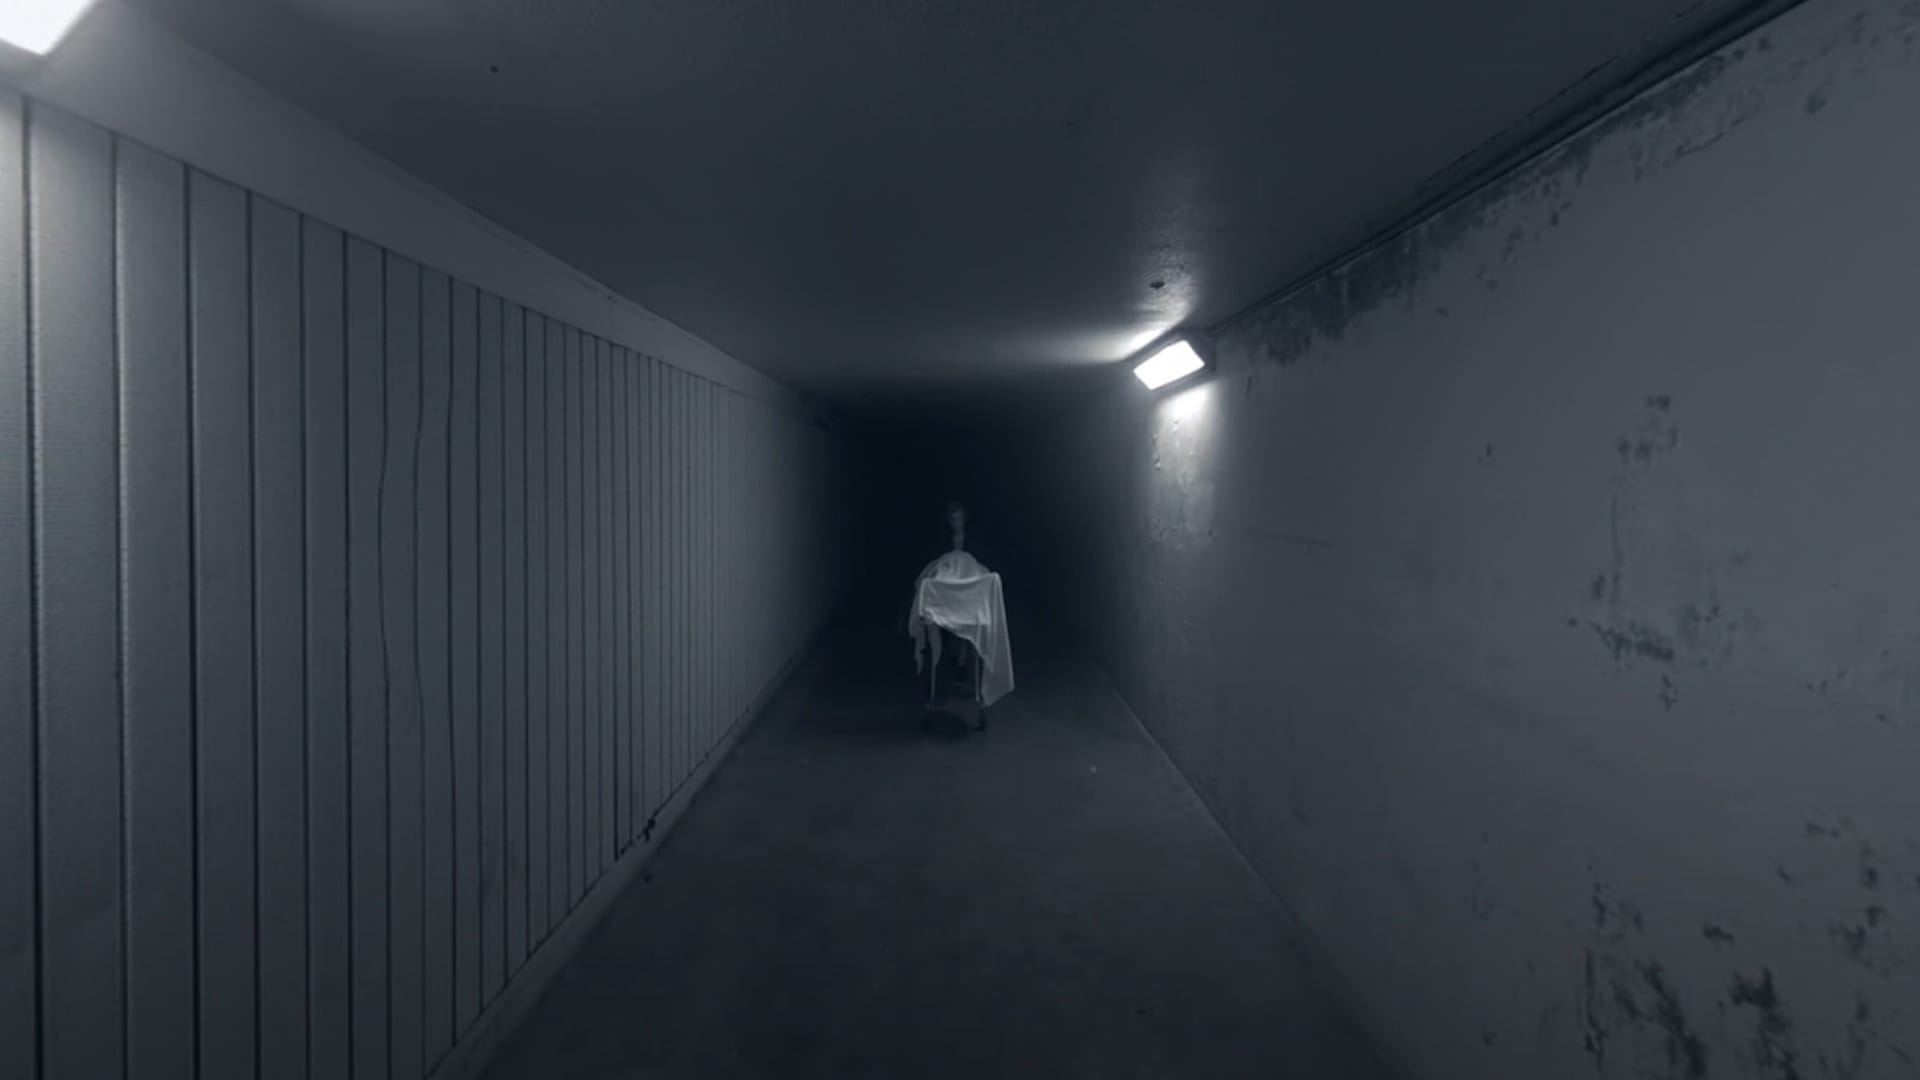 A cadaver covered by a sheet is wheeled down a dark hallway.